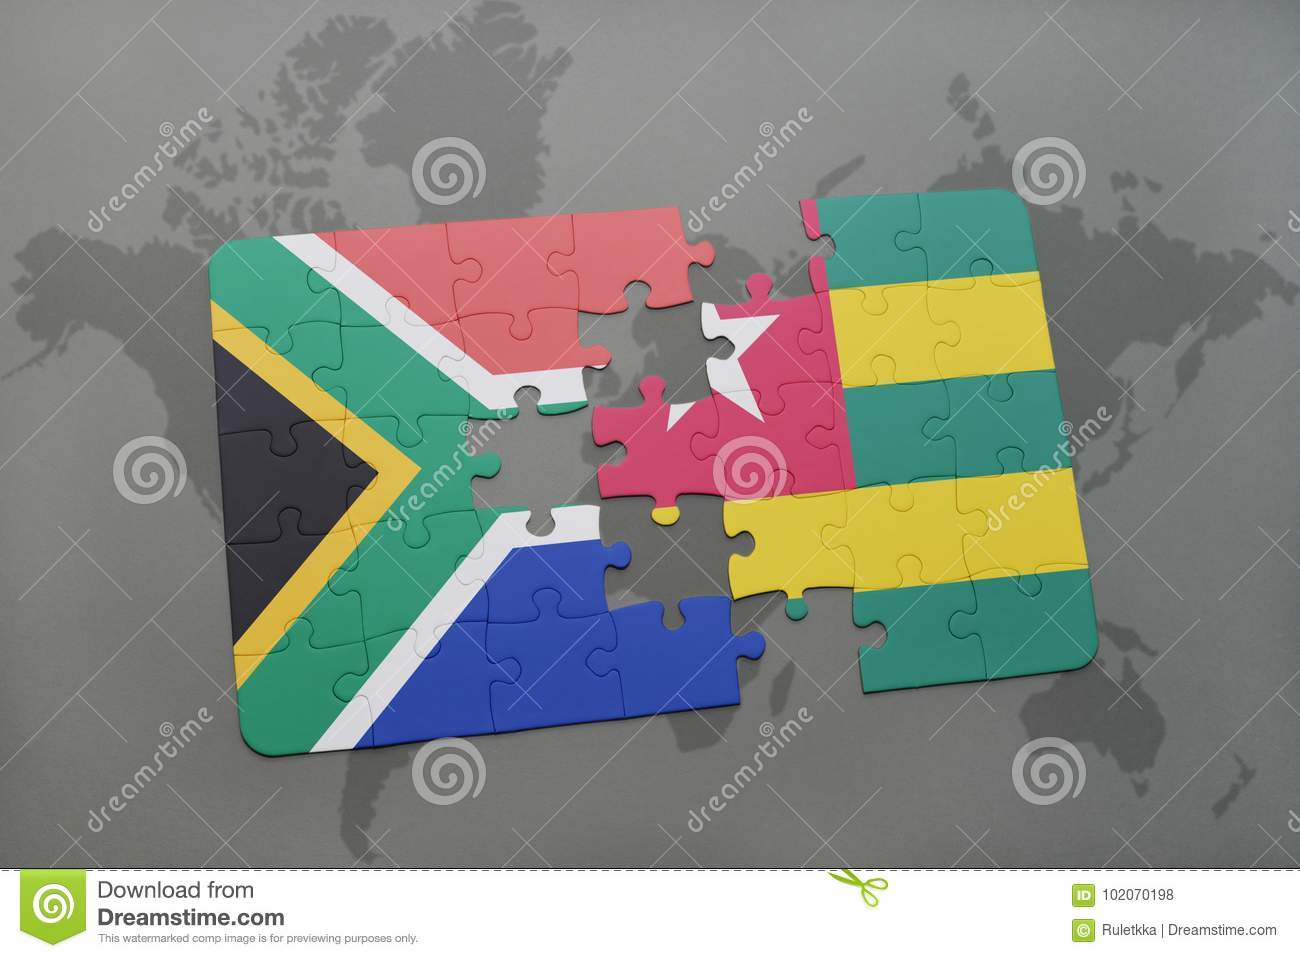 Puzzle with the national flag of south africa and togo on a world download puzzle with the national flag of south africa and togo on a world map gumiabroncs Image collections